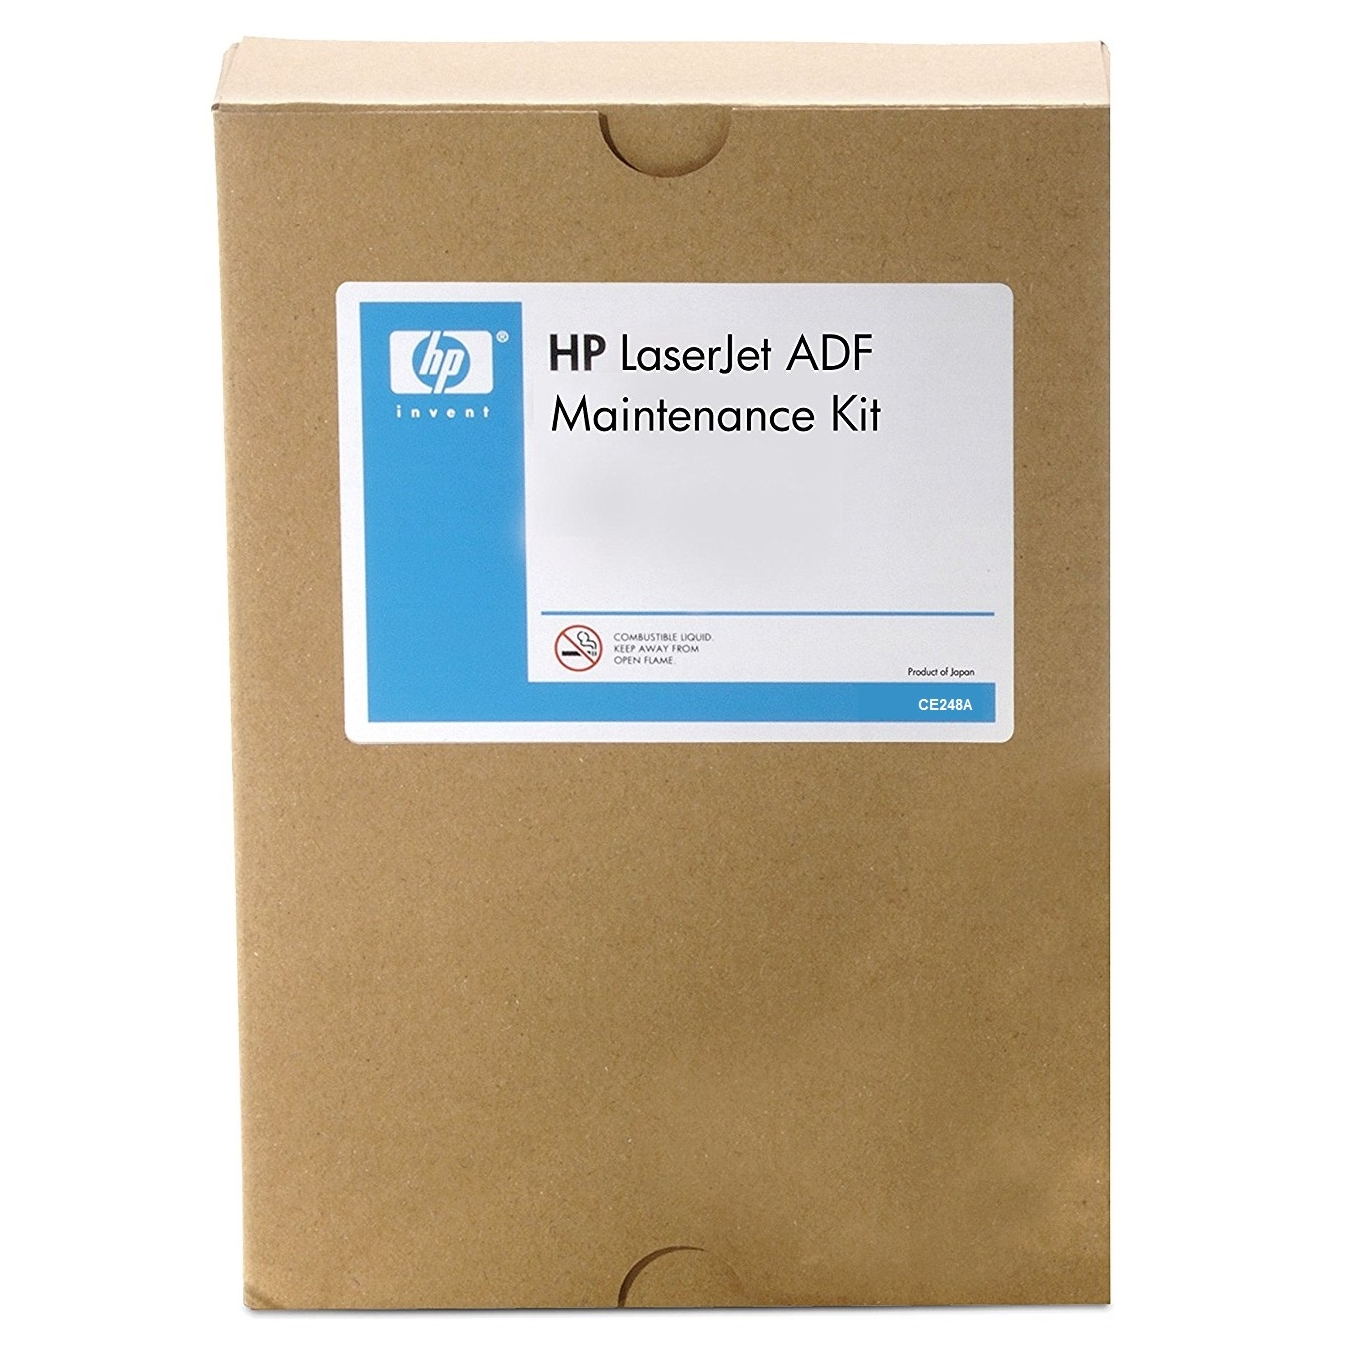 Original HP CE248A MFP ADF Maintenance Kit (CE248A)